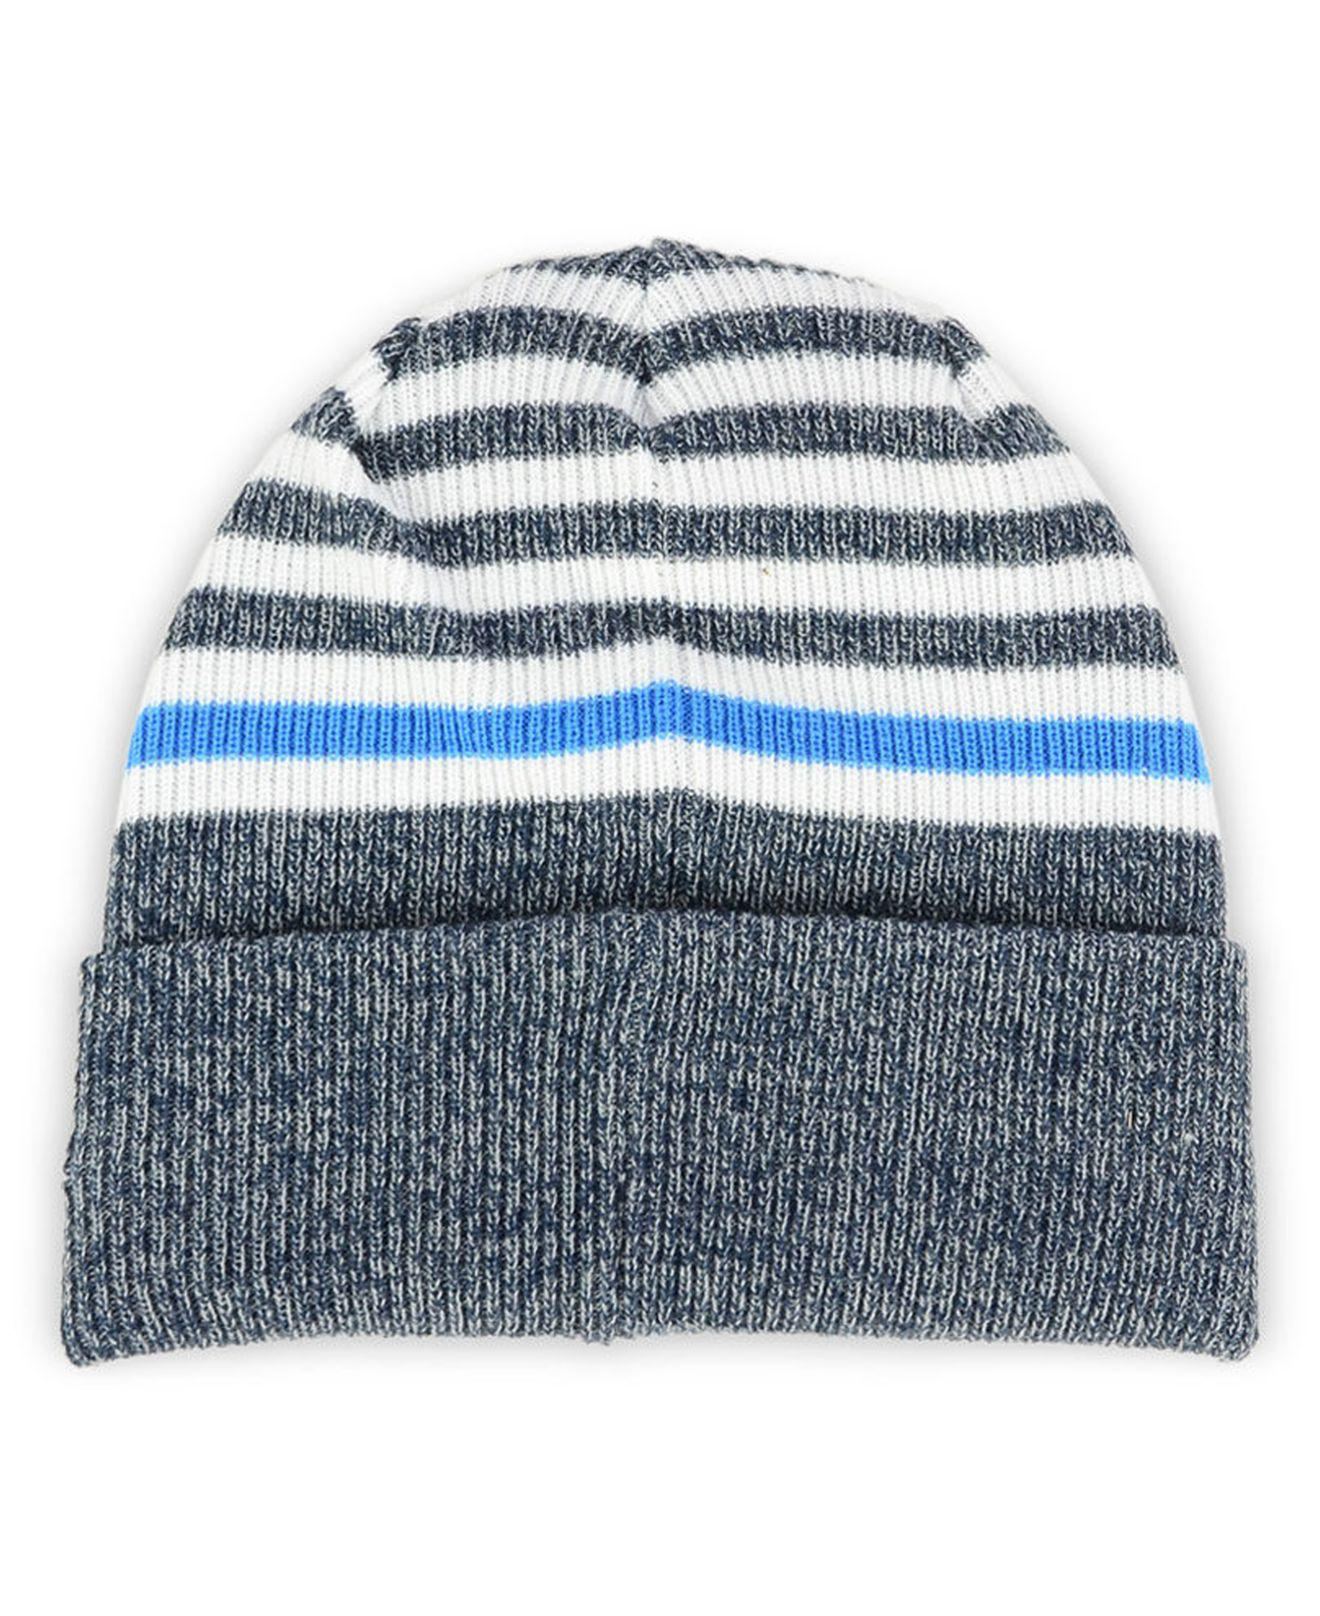 694249b2250a3 purchase lyst ktz los angeles chargers striped2 cuff knit hat in blue 24d2e  f0079